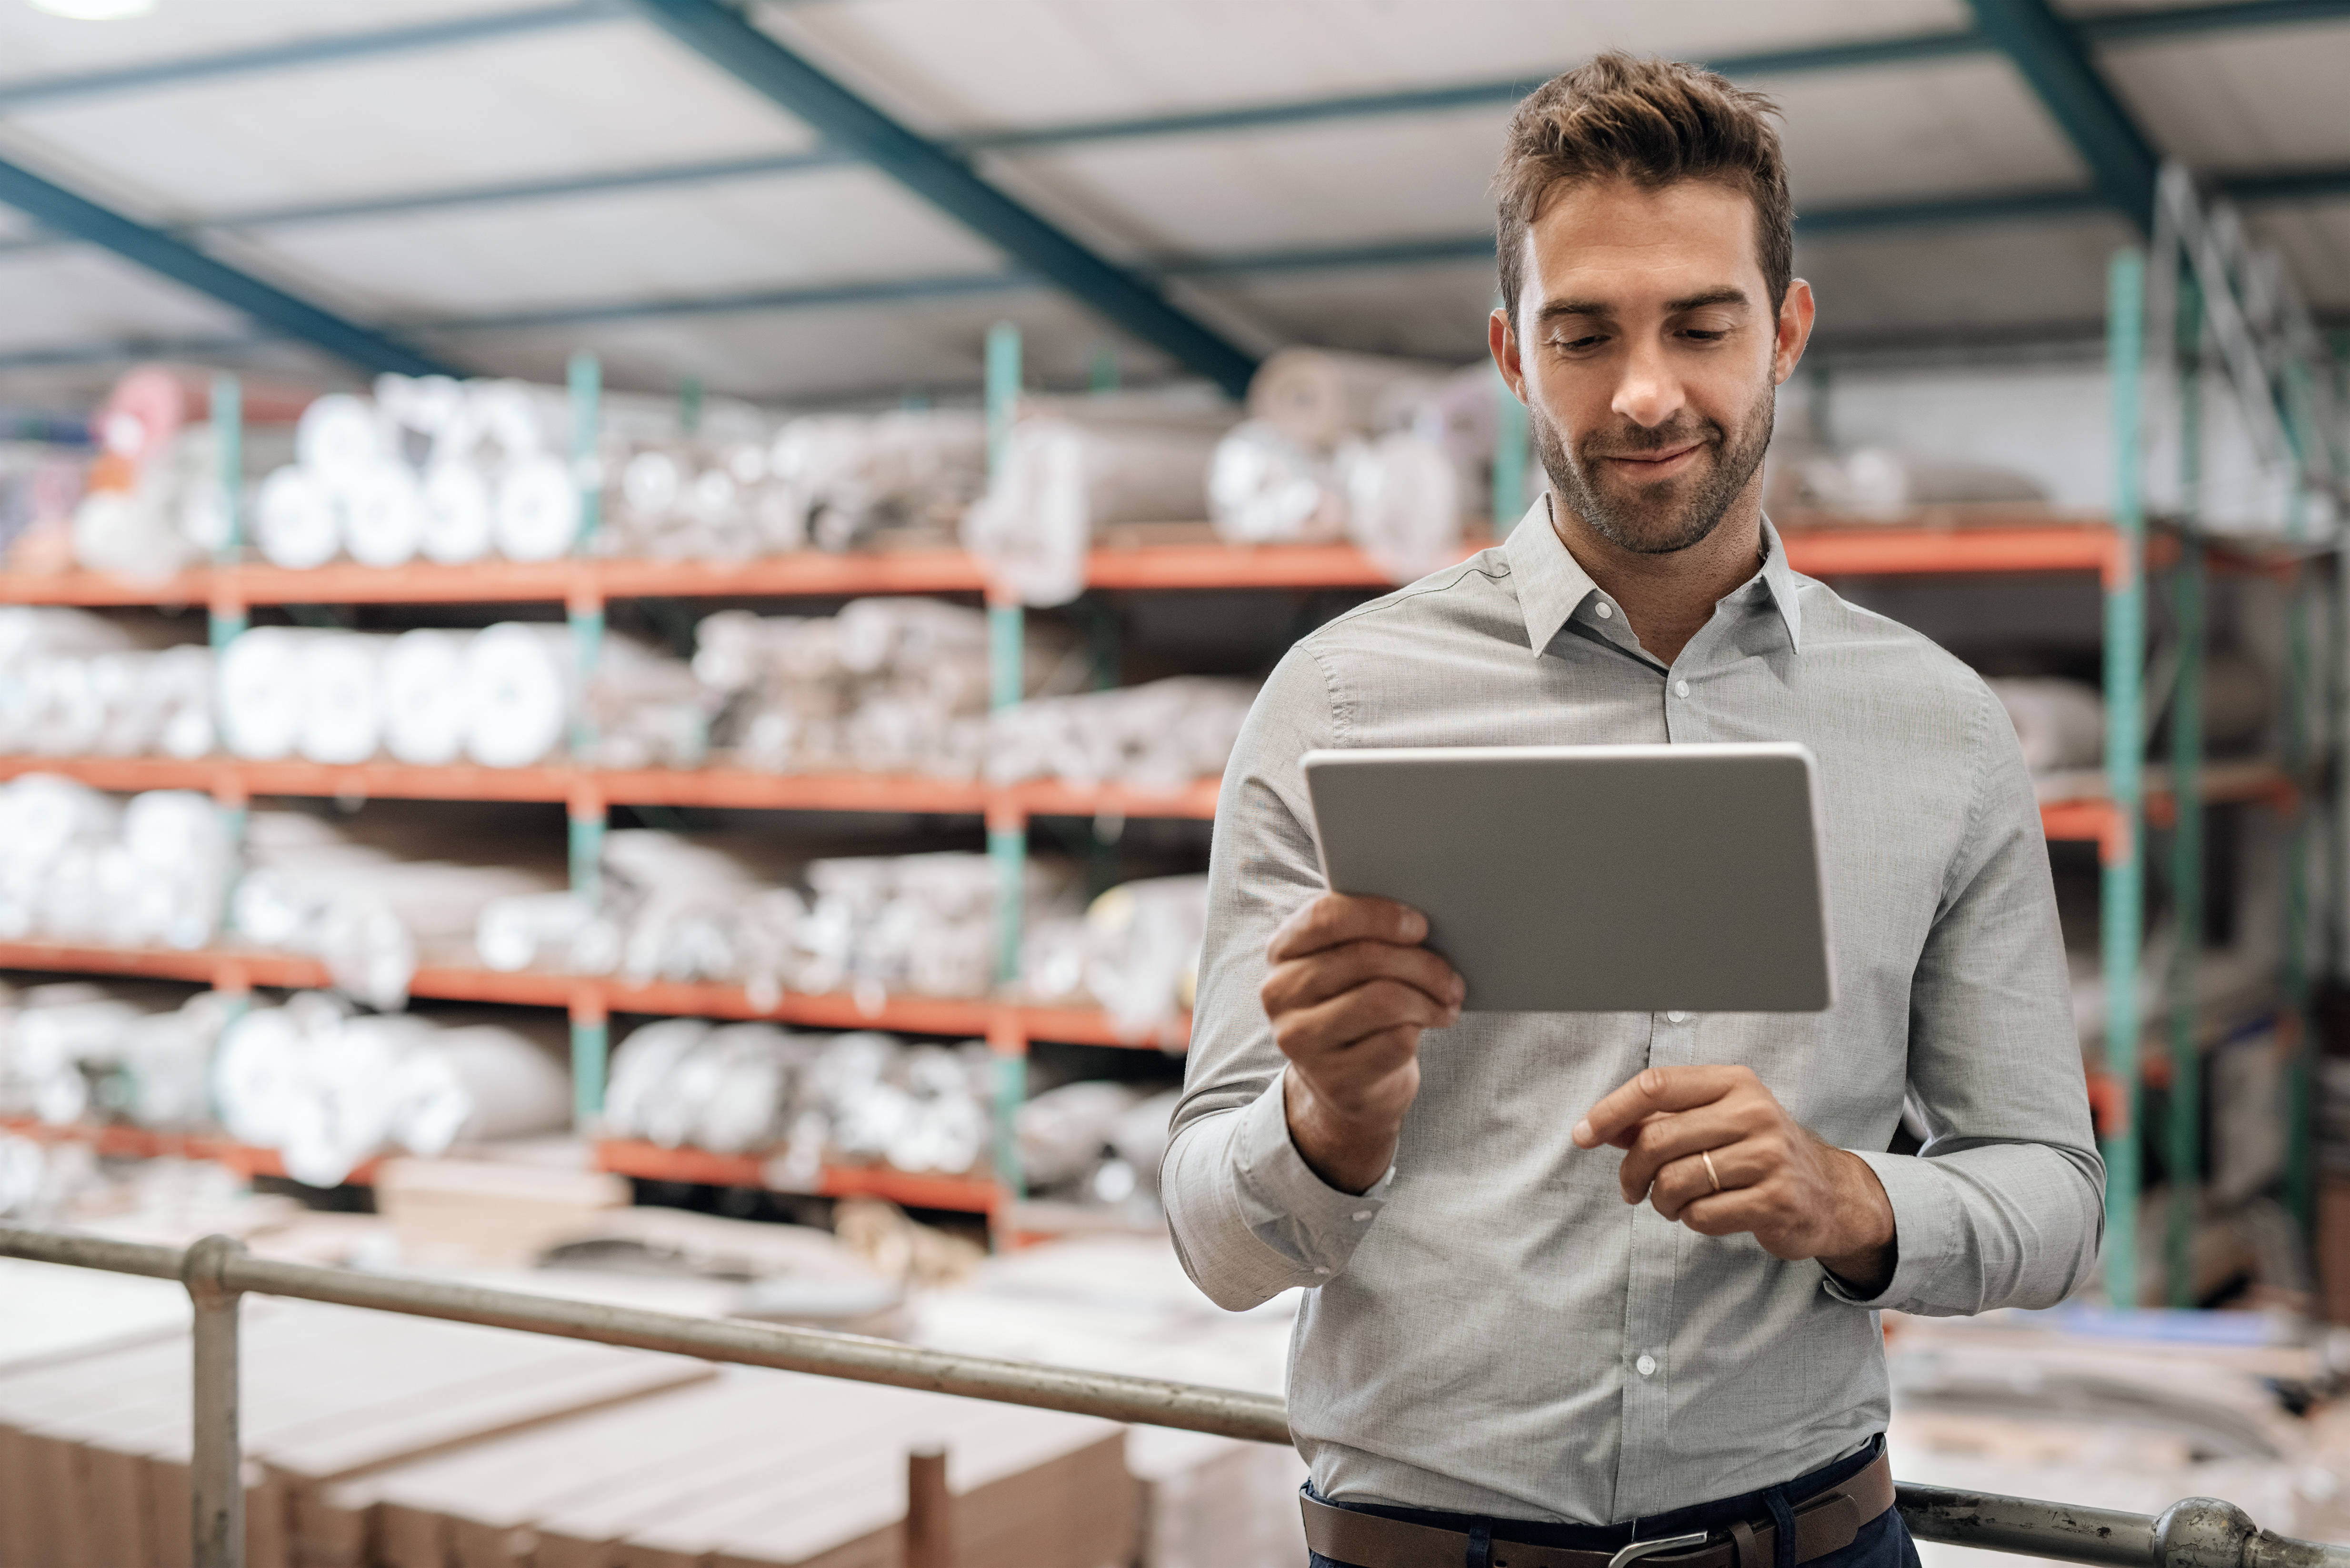 Smiling manager using a digital tablet in his warehouse